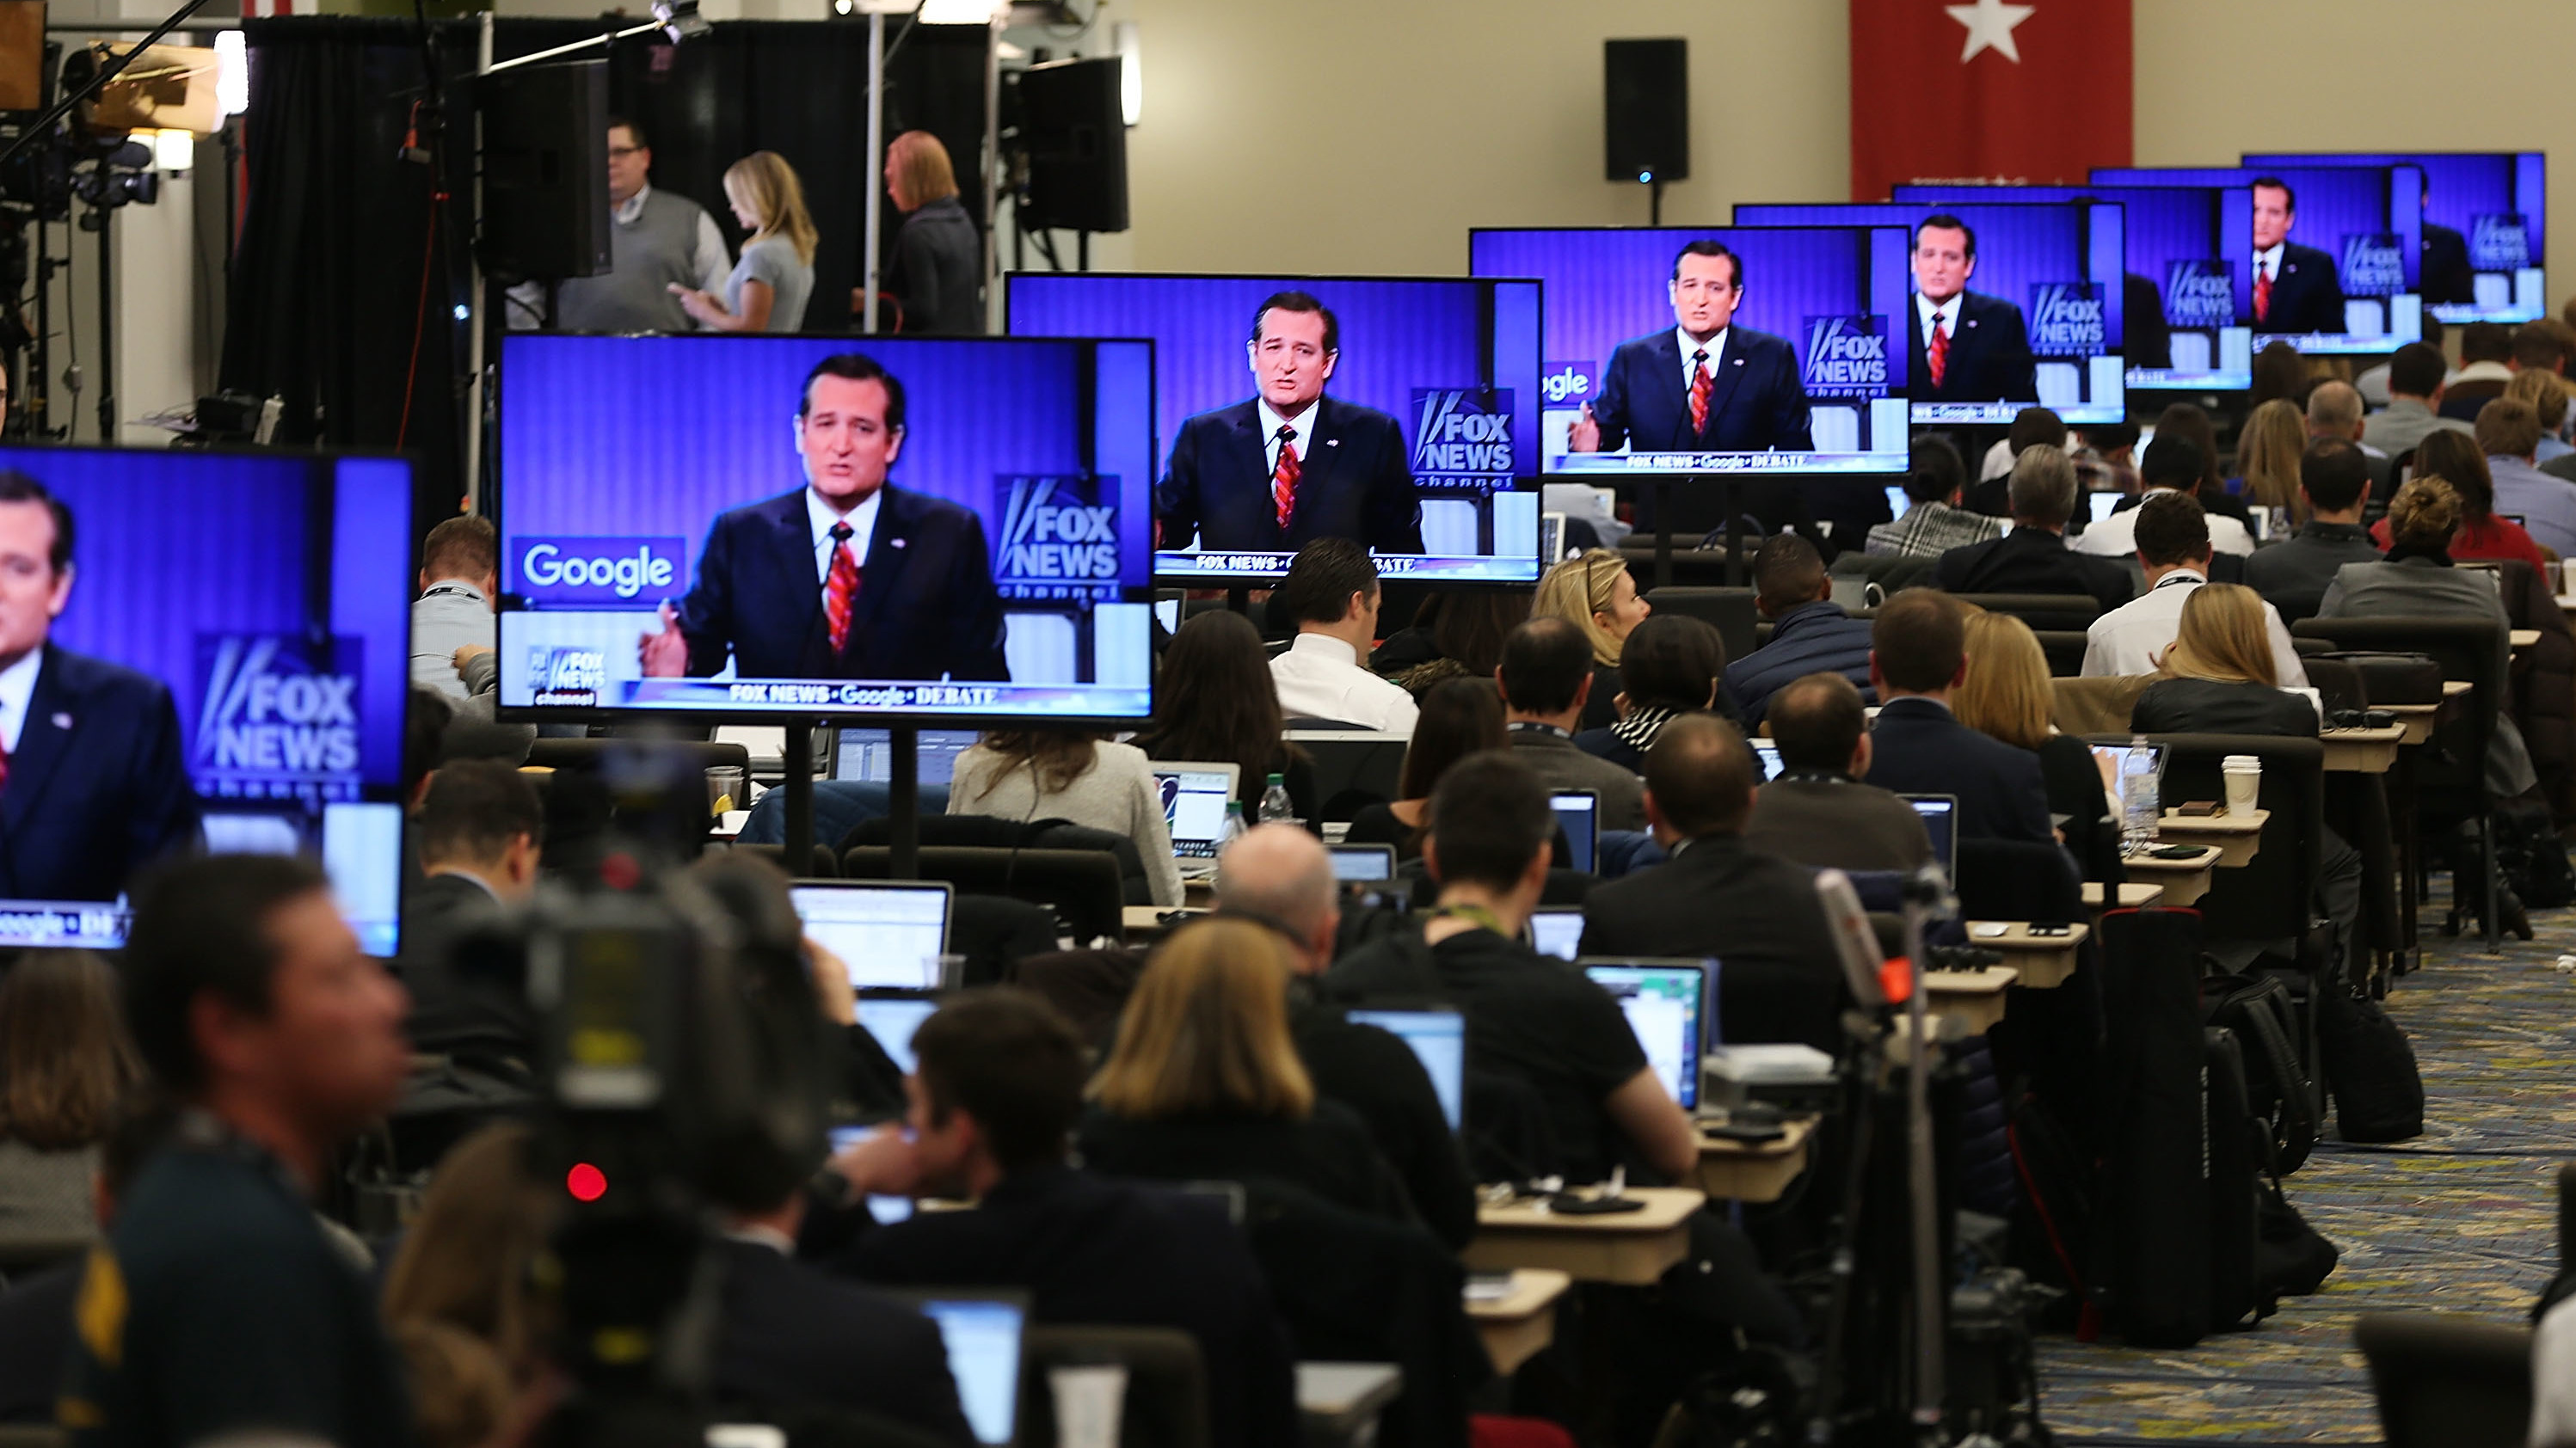 Television screens are tuned to a Republican presidential debate sponsored by Fox News and Google in January 2016.